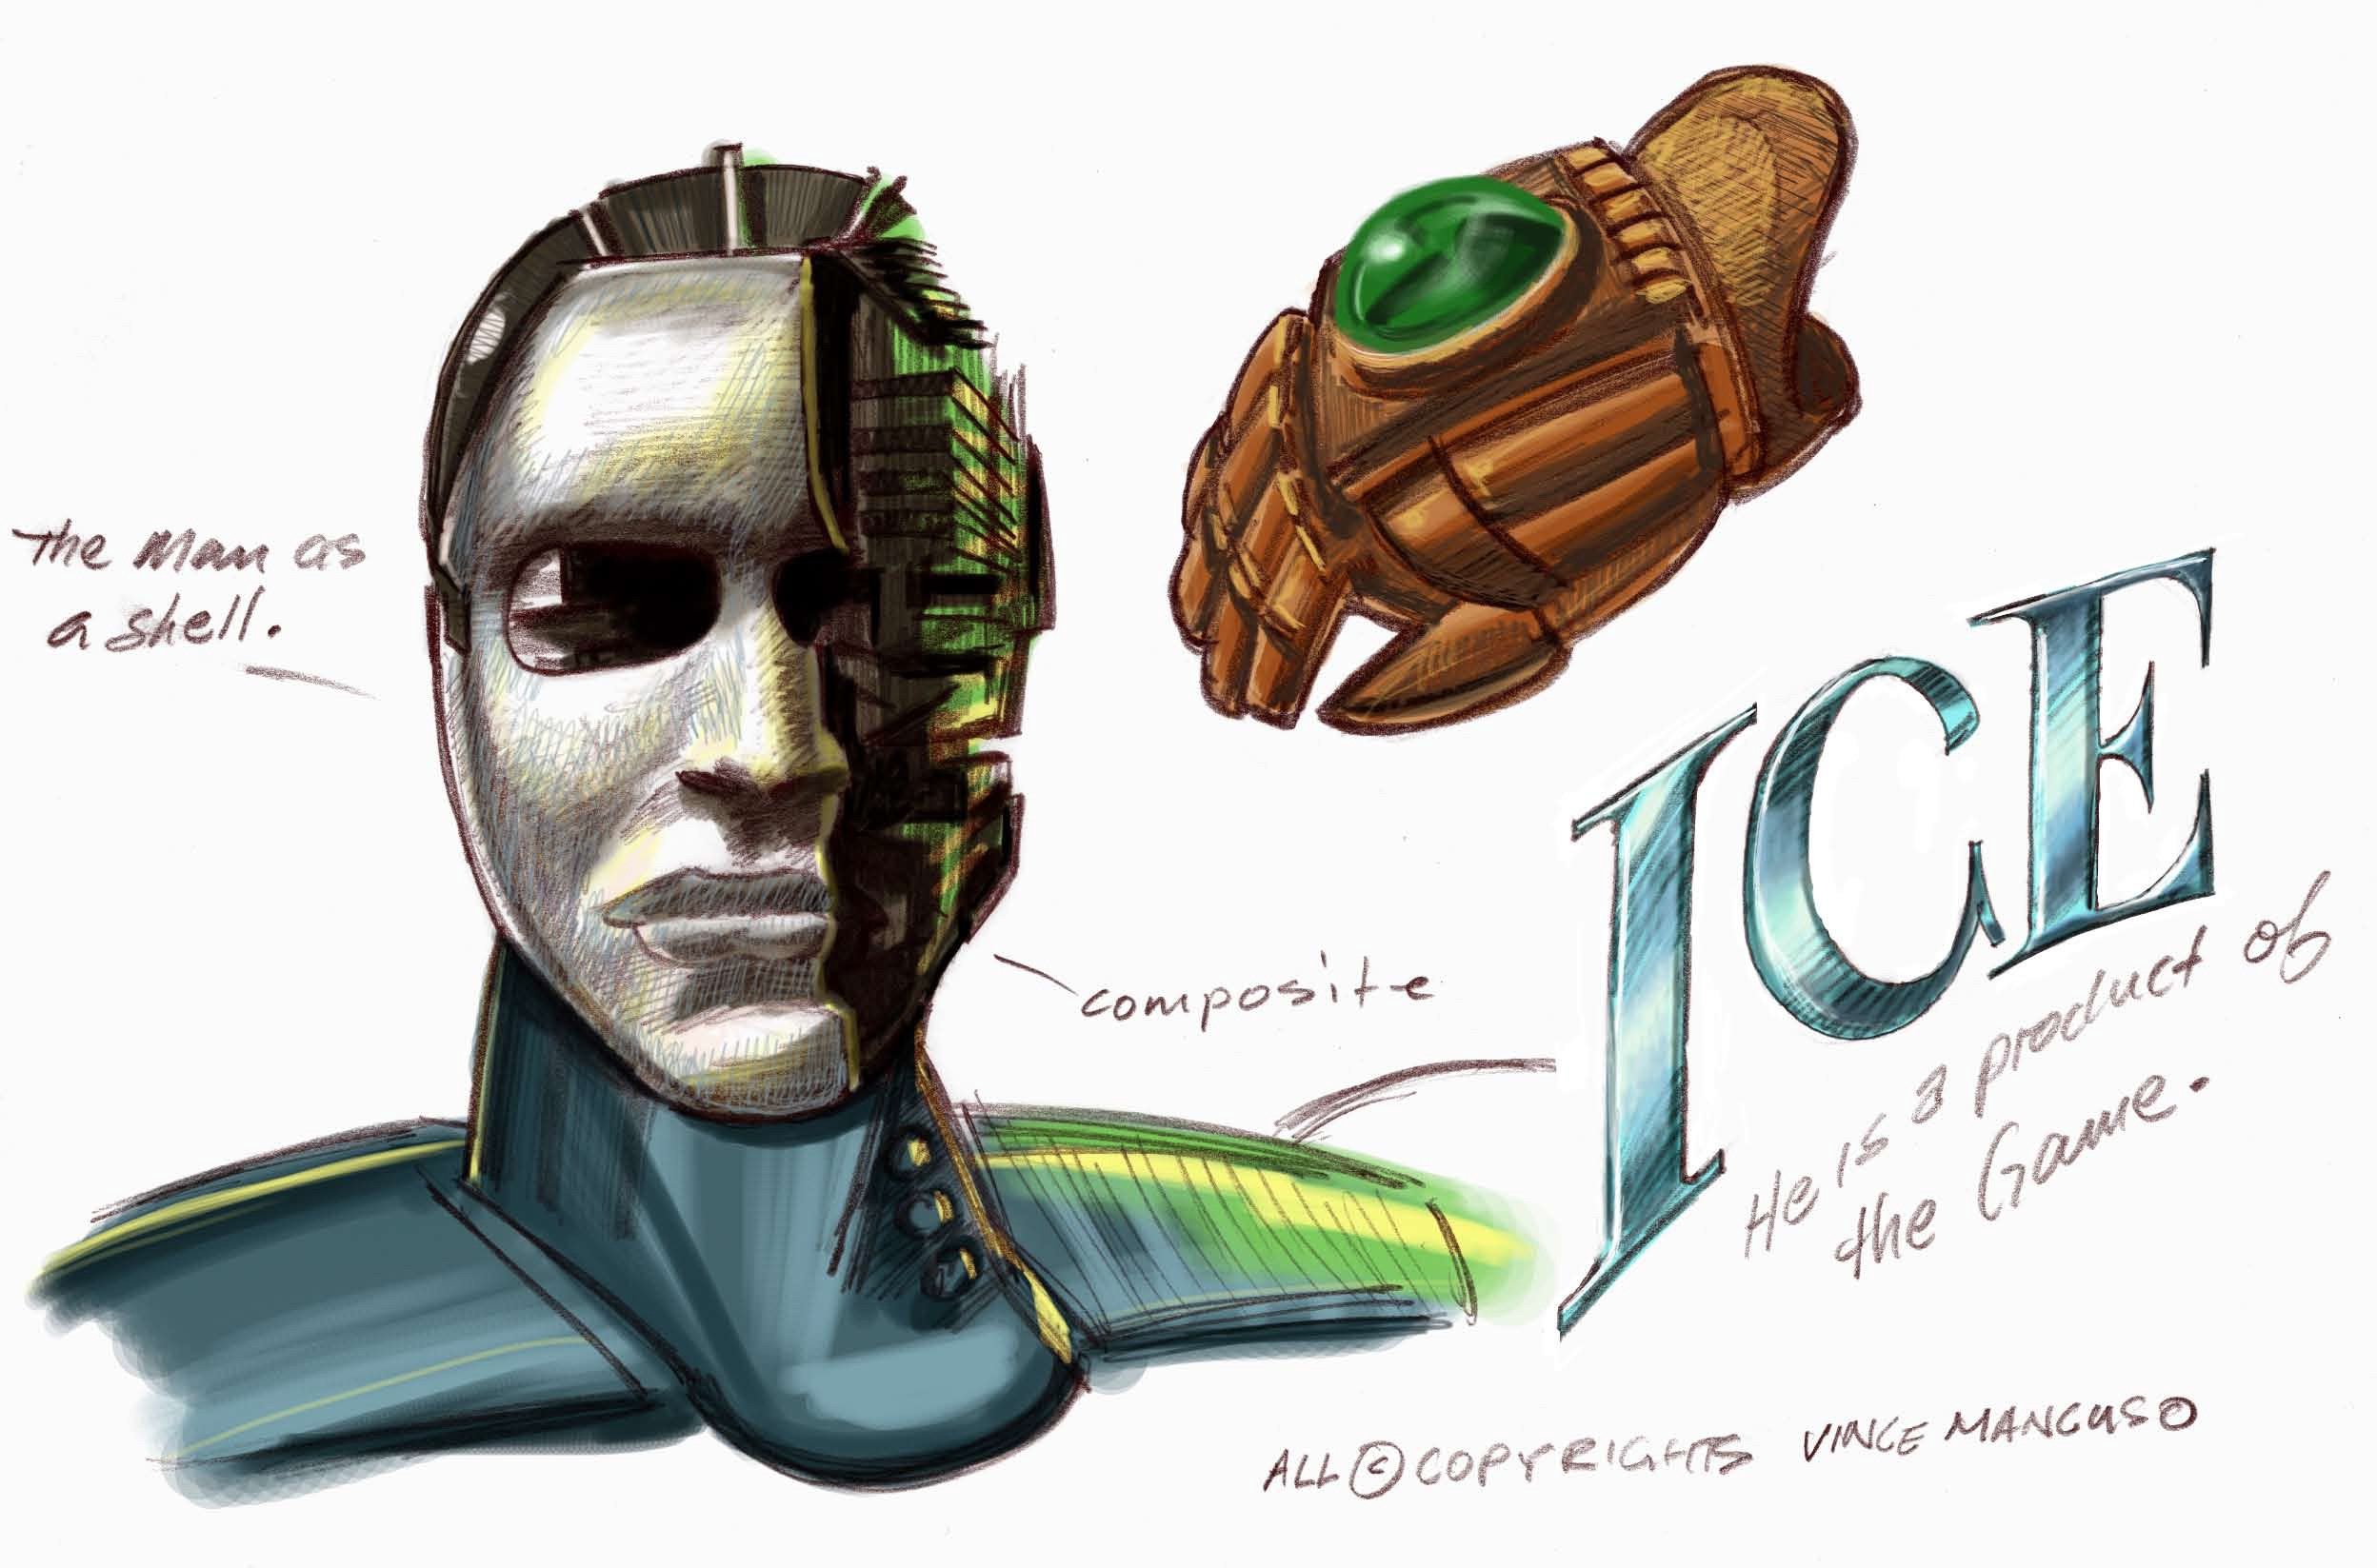 Cyborg concept for ICE.